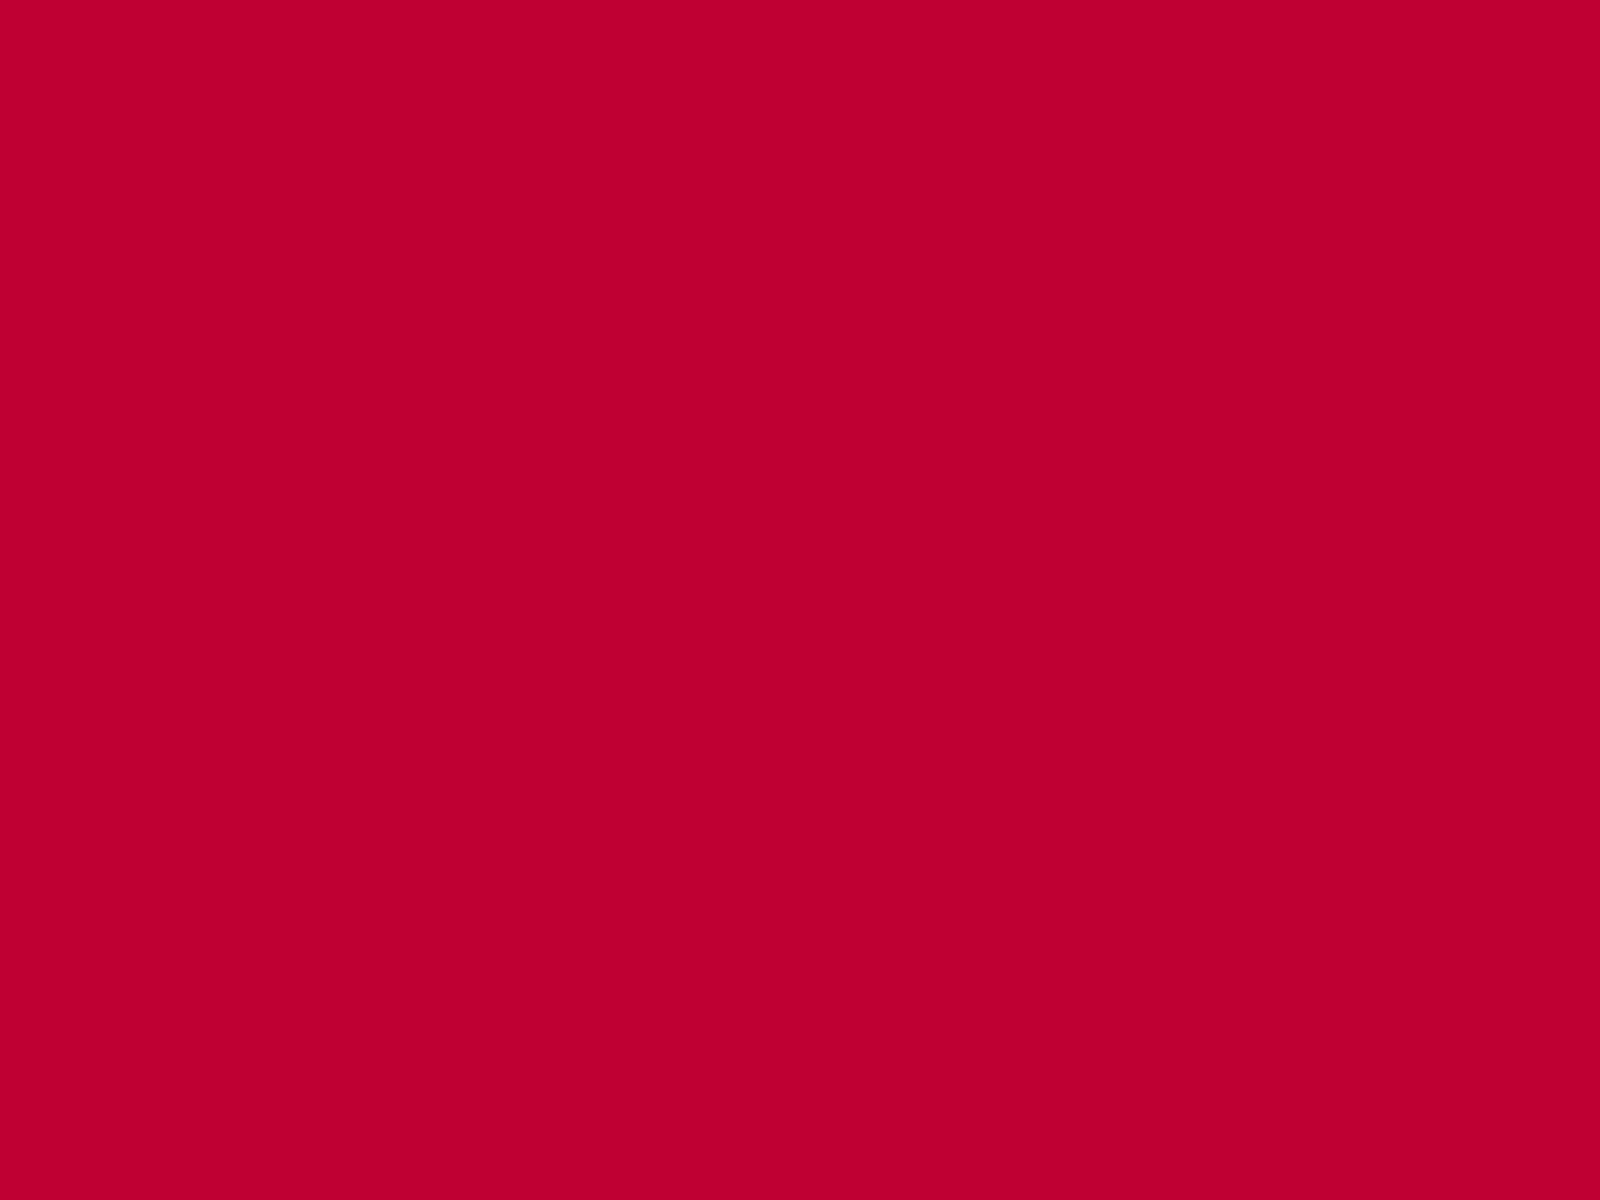 1600x1200 Crimson Glory Solid Color Background